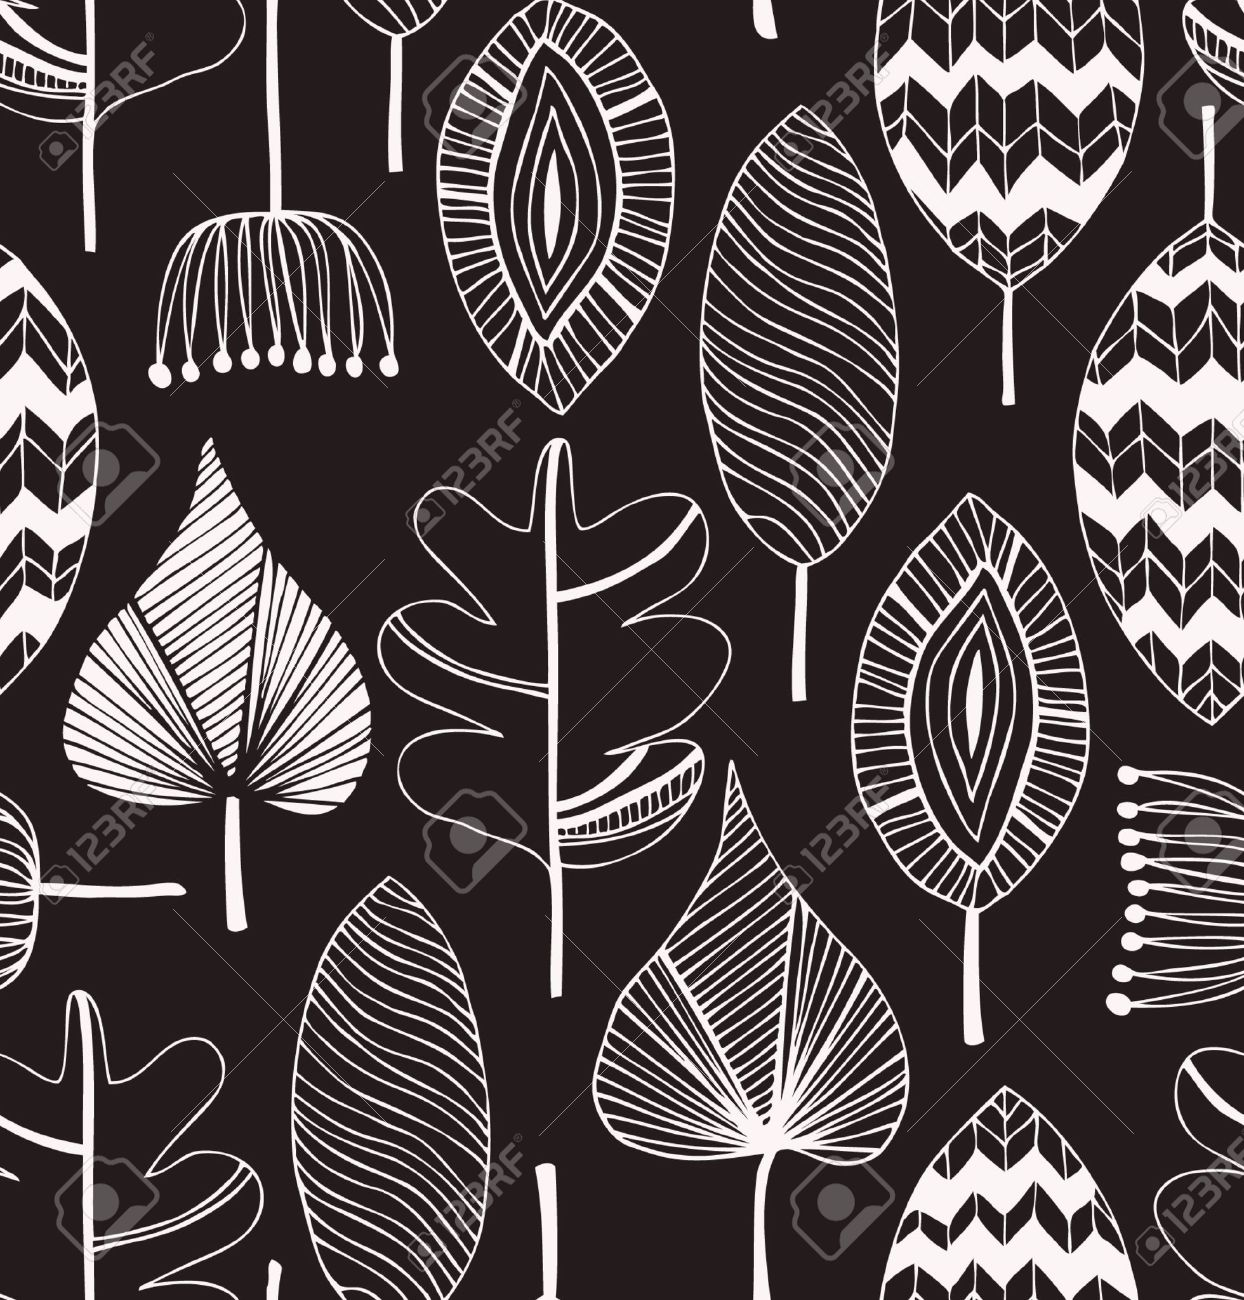 Floral linear seamless decorative pattern. Scribble background with leafs. Black and white contour fabric texture. Hand drawn template for design Stock Vector - 17933364